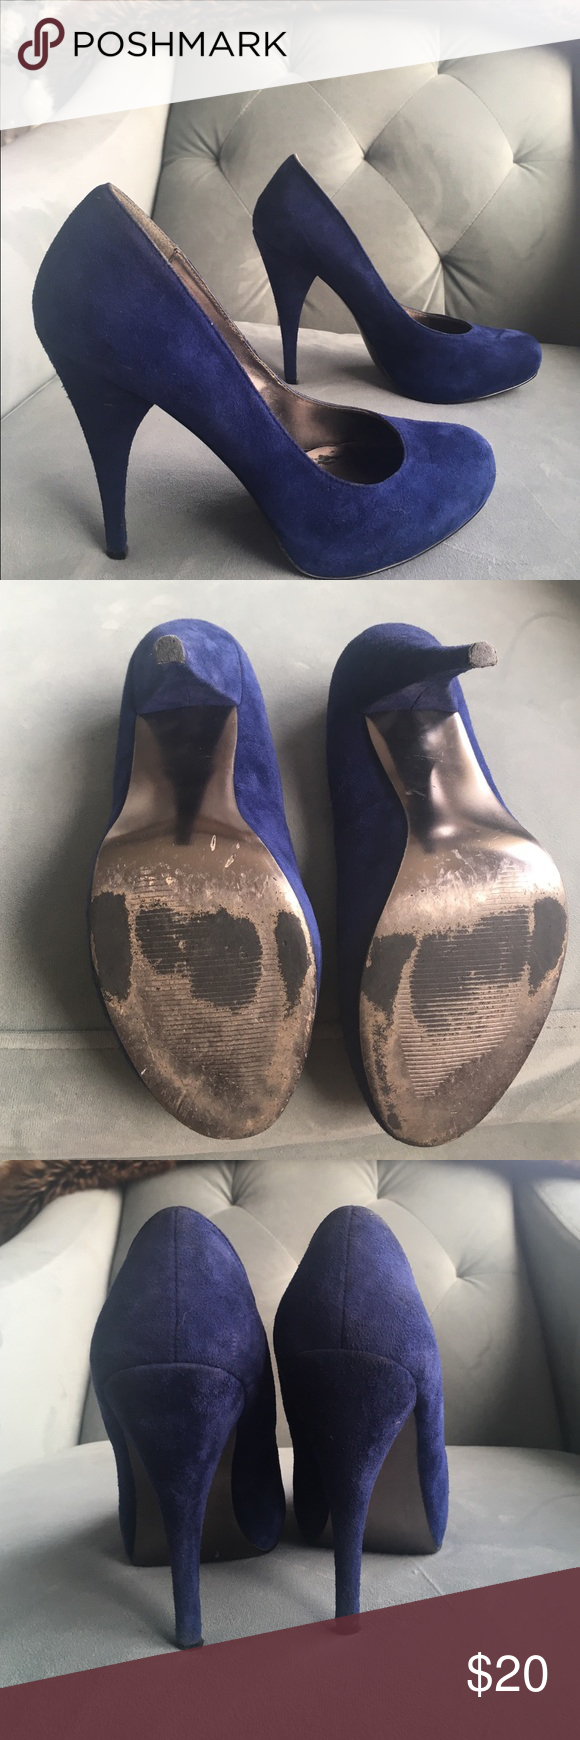 Blue Suede Stilettos Steve Madden Trinitie covered platform Blue suede stilettos. Excellent used condition. Minor scuffing on soles, and minor wear on heel taps - vibrant color!! I'm a true 8, and was able to wear these comfortably, but I wouldn't say they run small. Steve Madden Shoes Heels